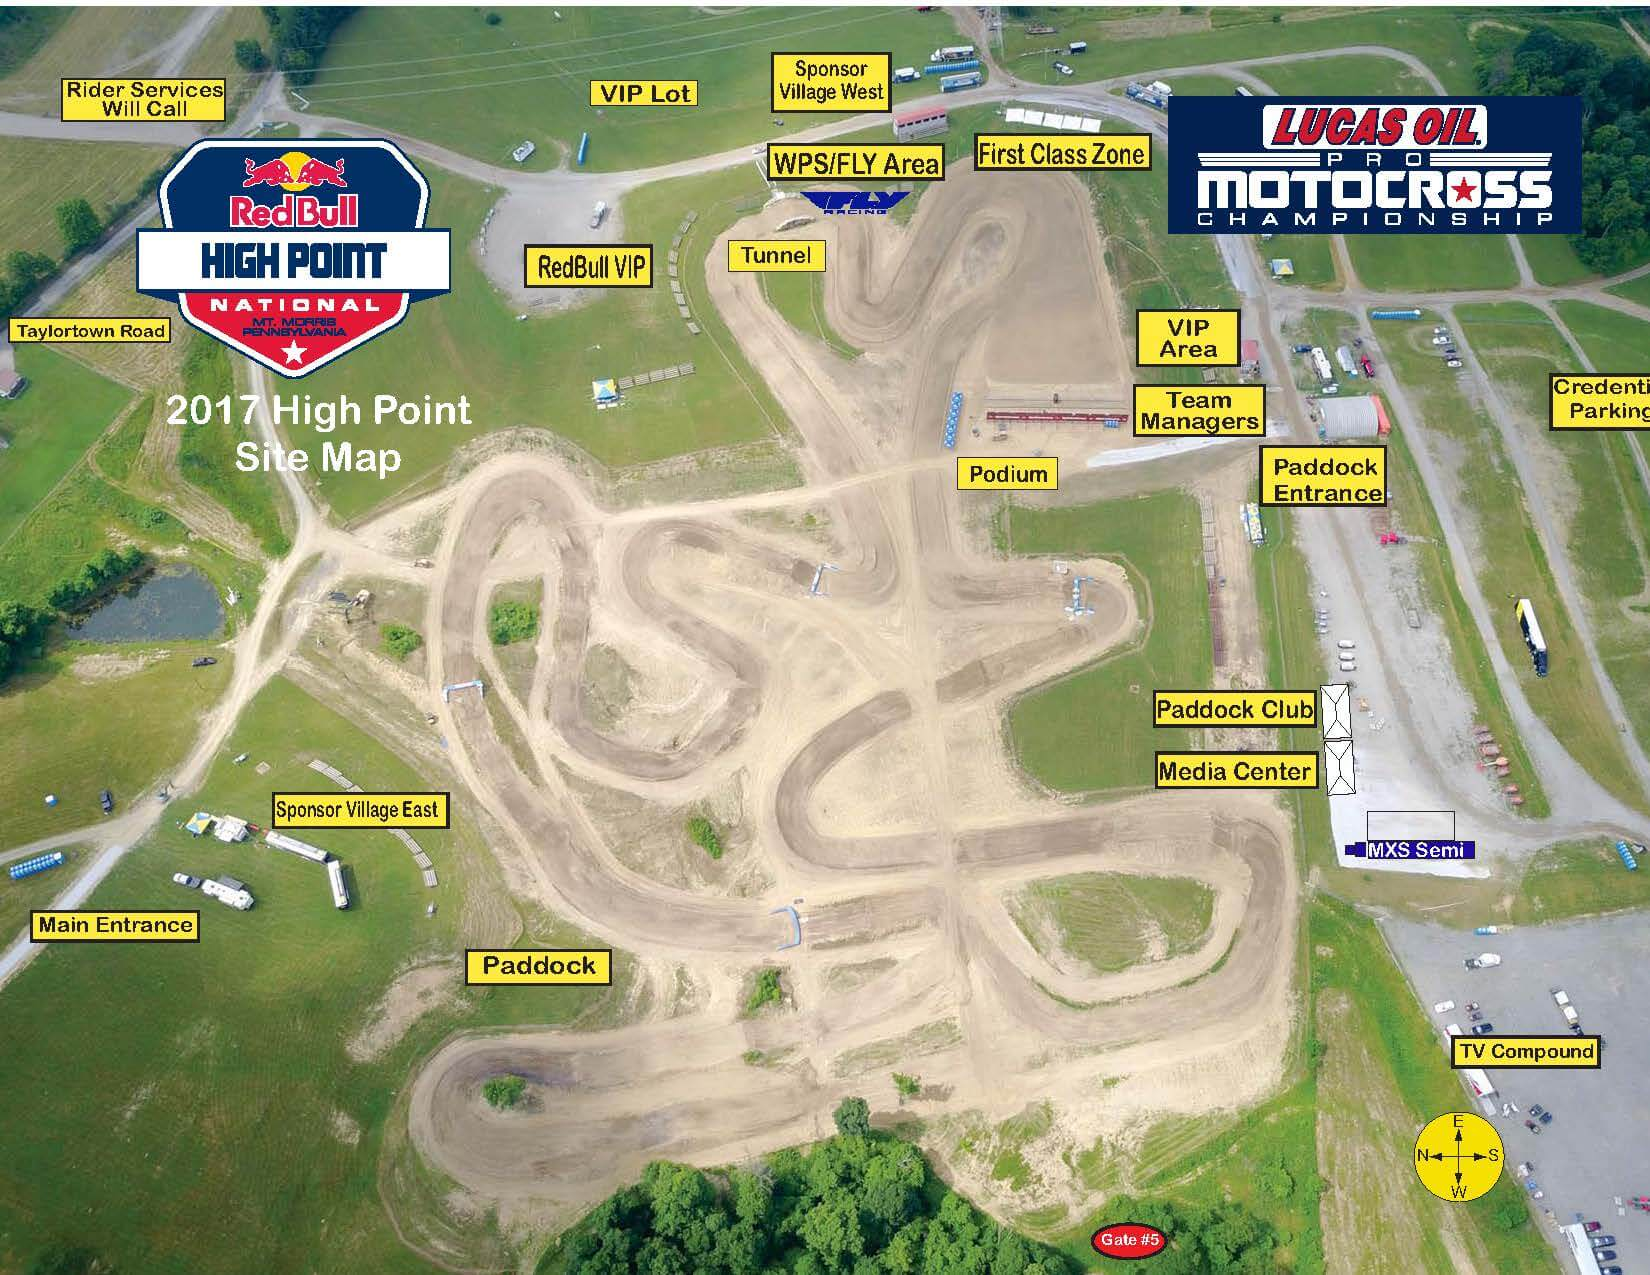 2017 High Point Site Map.jpg